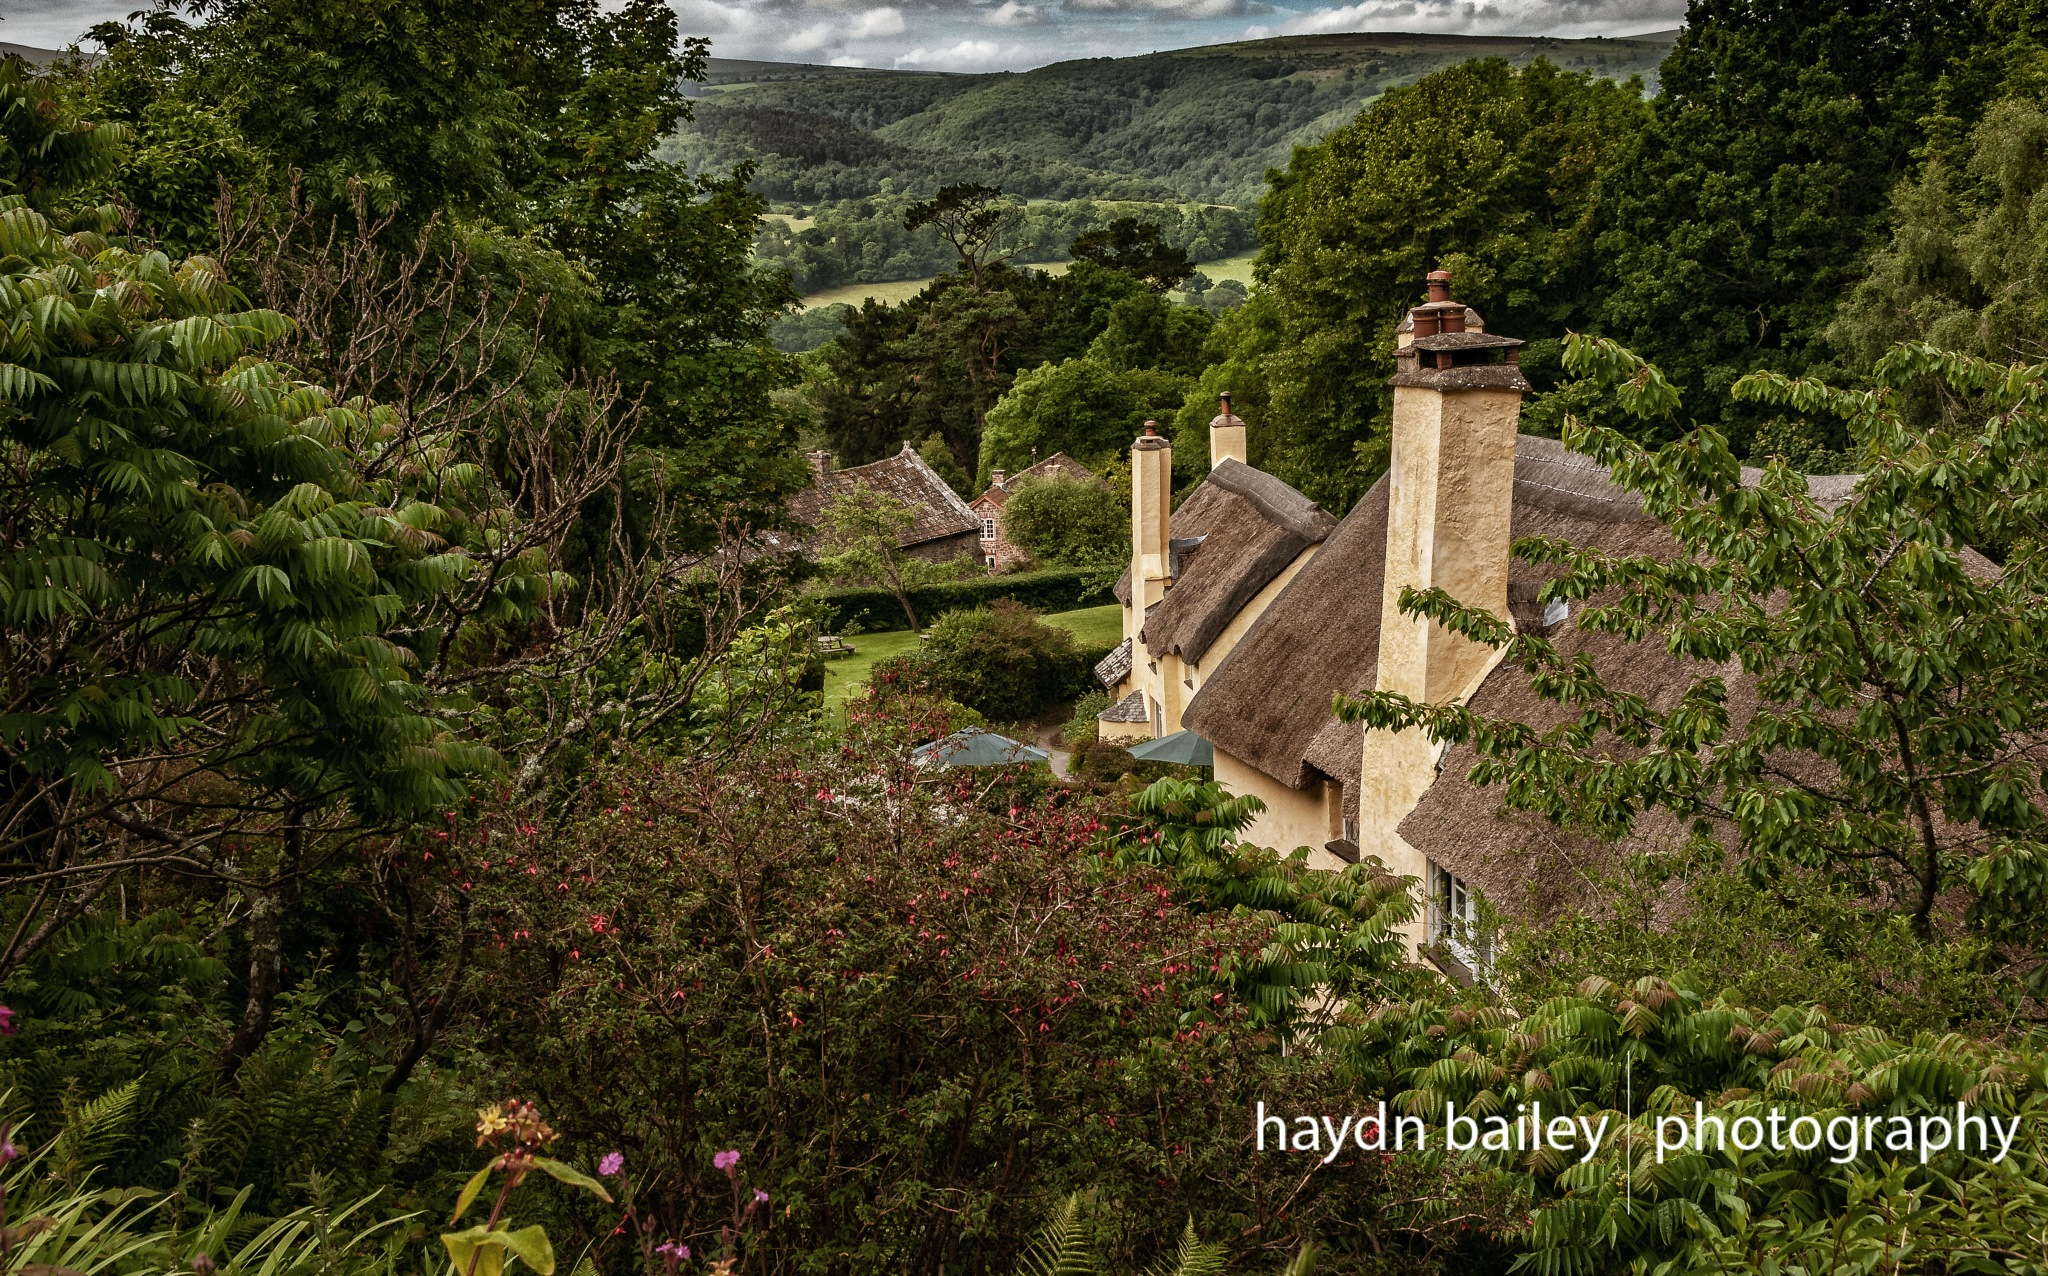 Thatched Cottages by Haydn Bailey